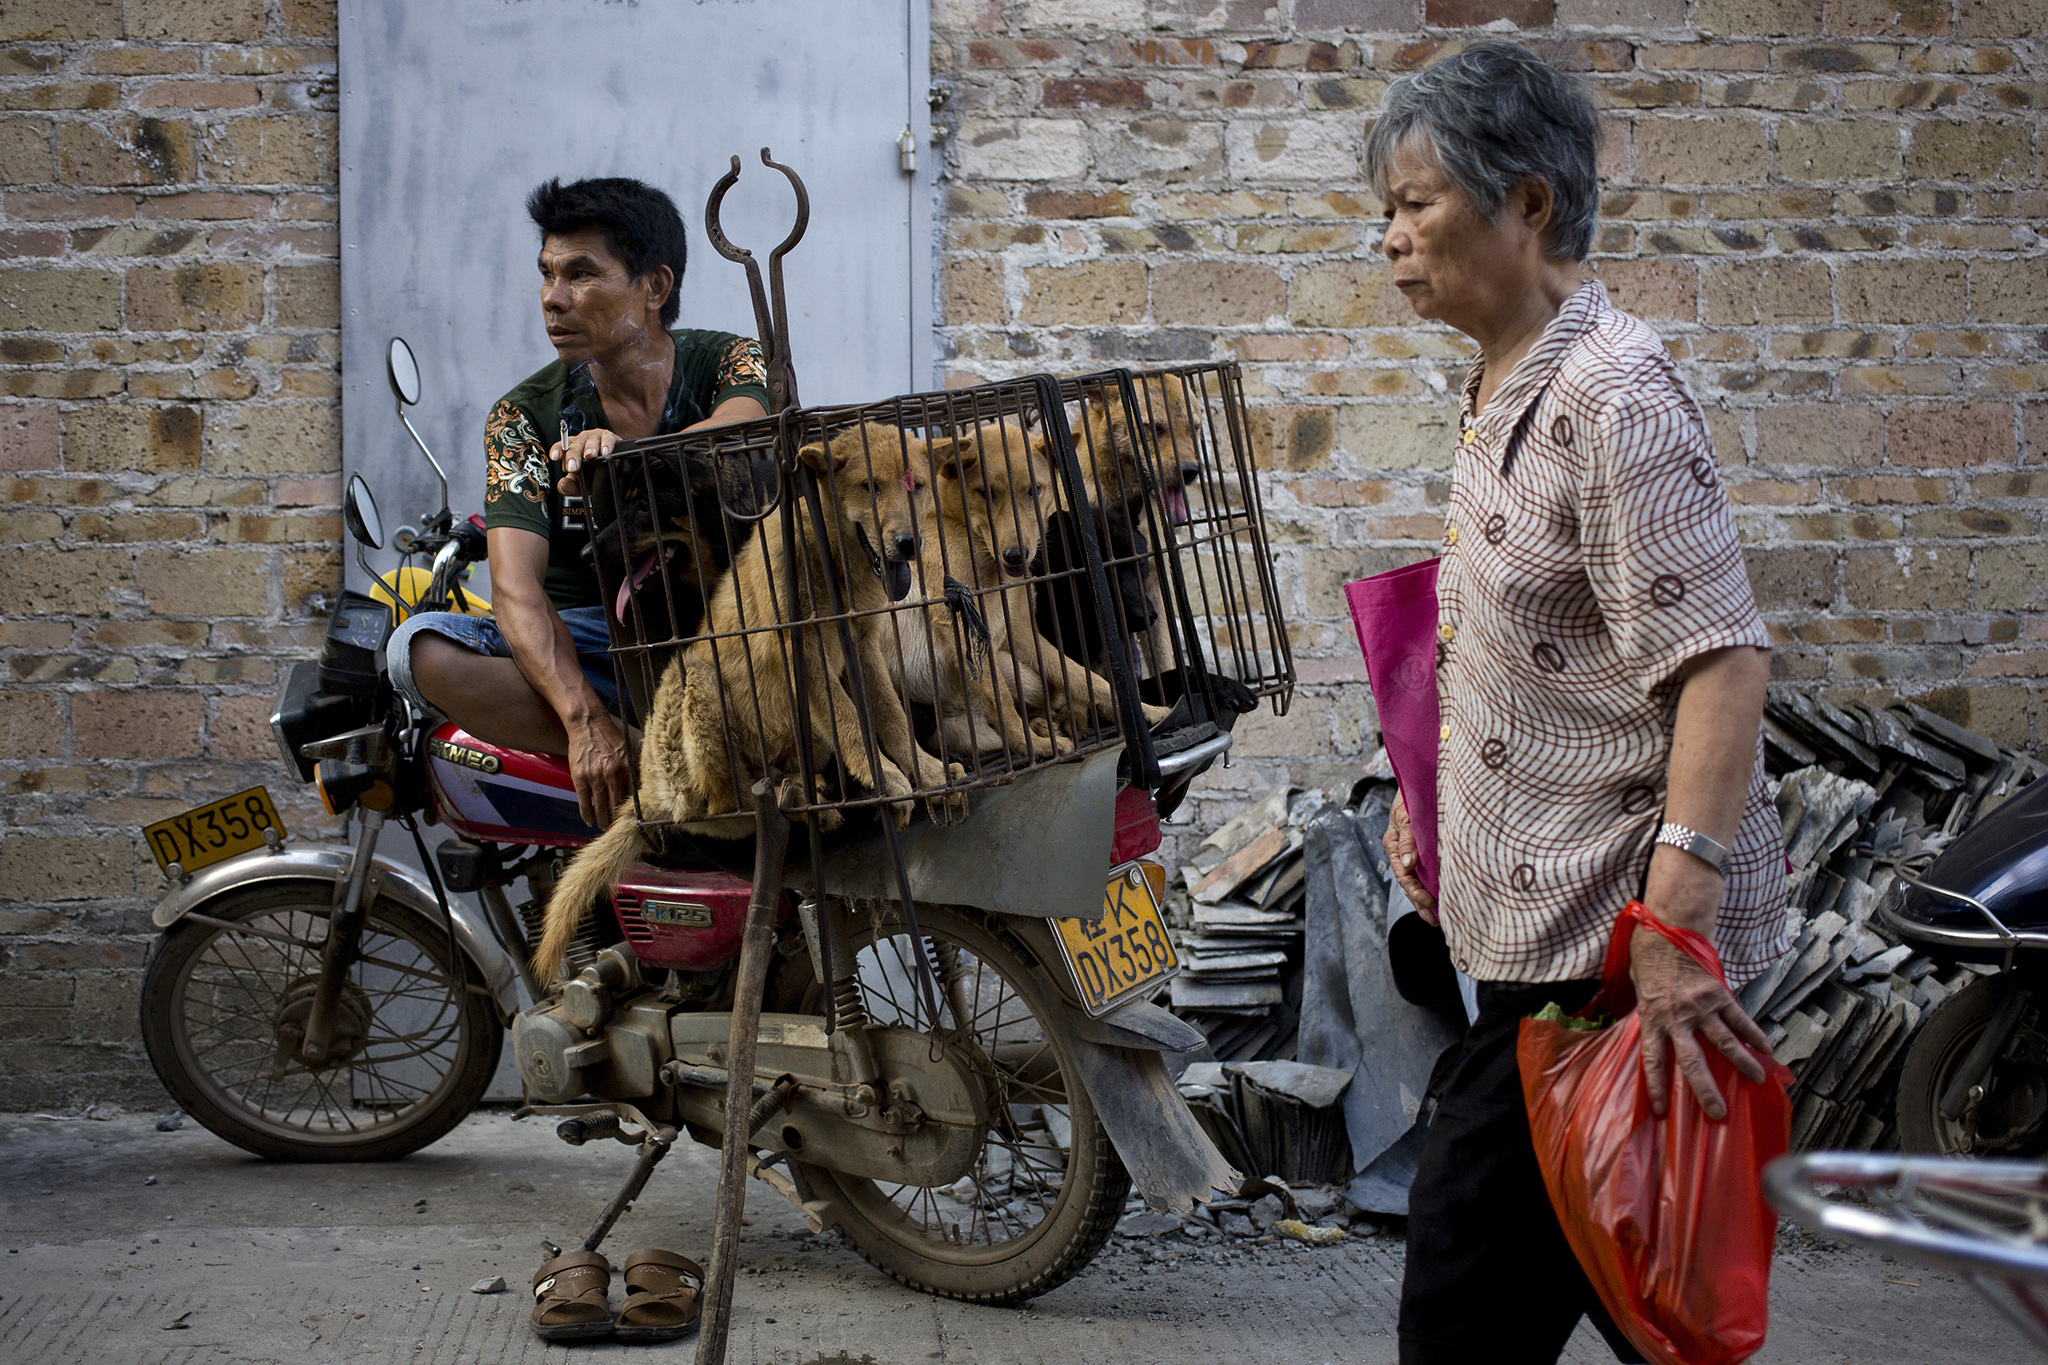 A woman walks past a dog vendor waits for buyers next to the dogs in a cage for sale at a market during a dog meat festival in Yulin in south China's Guangxi Zhuang Autonomous Region, Tuesday, June 21, 2016. Seeking to end what they call a cruel and unsanitary ritual, animal rights activists are working to end an annual dog meat feast in the southern Chinese town. (AP Photo/Andy Wong)